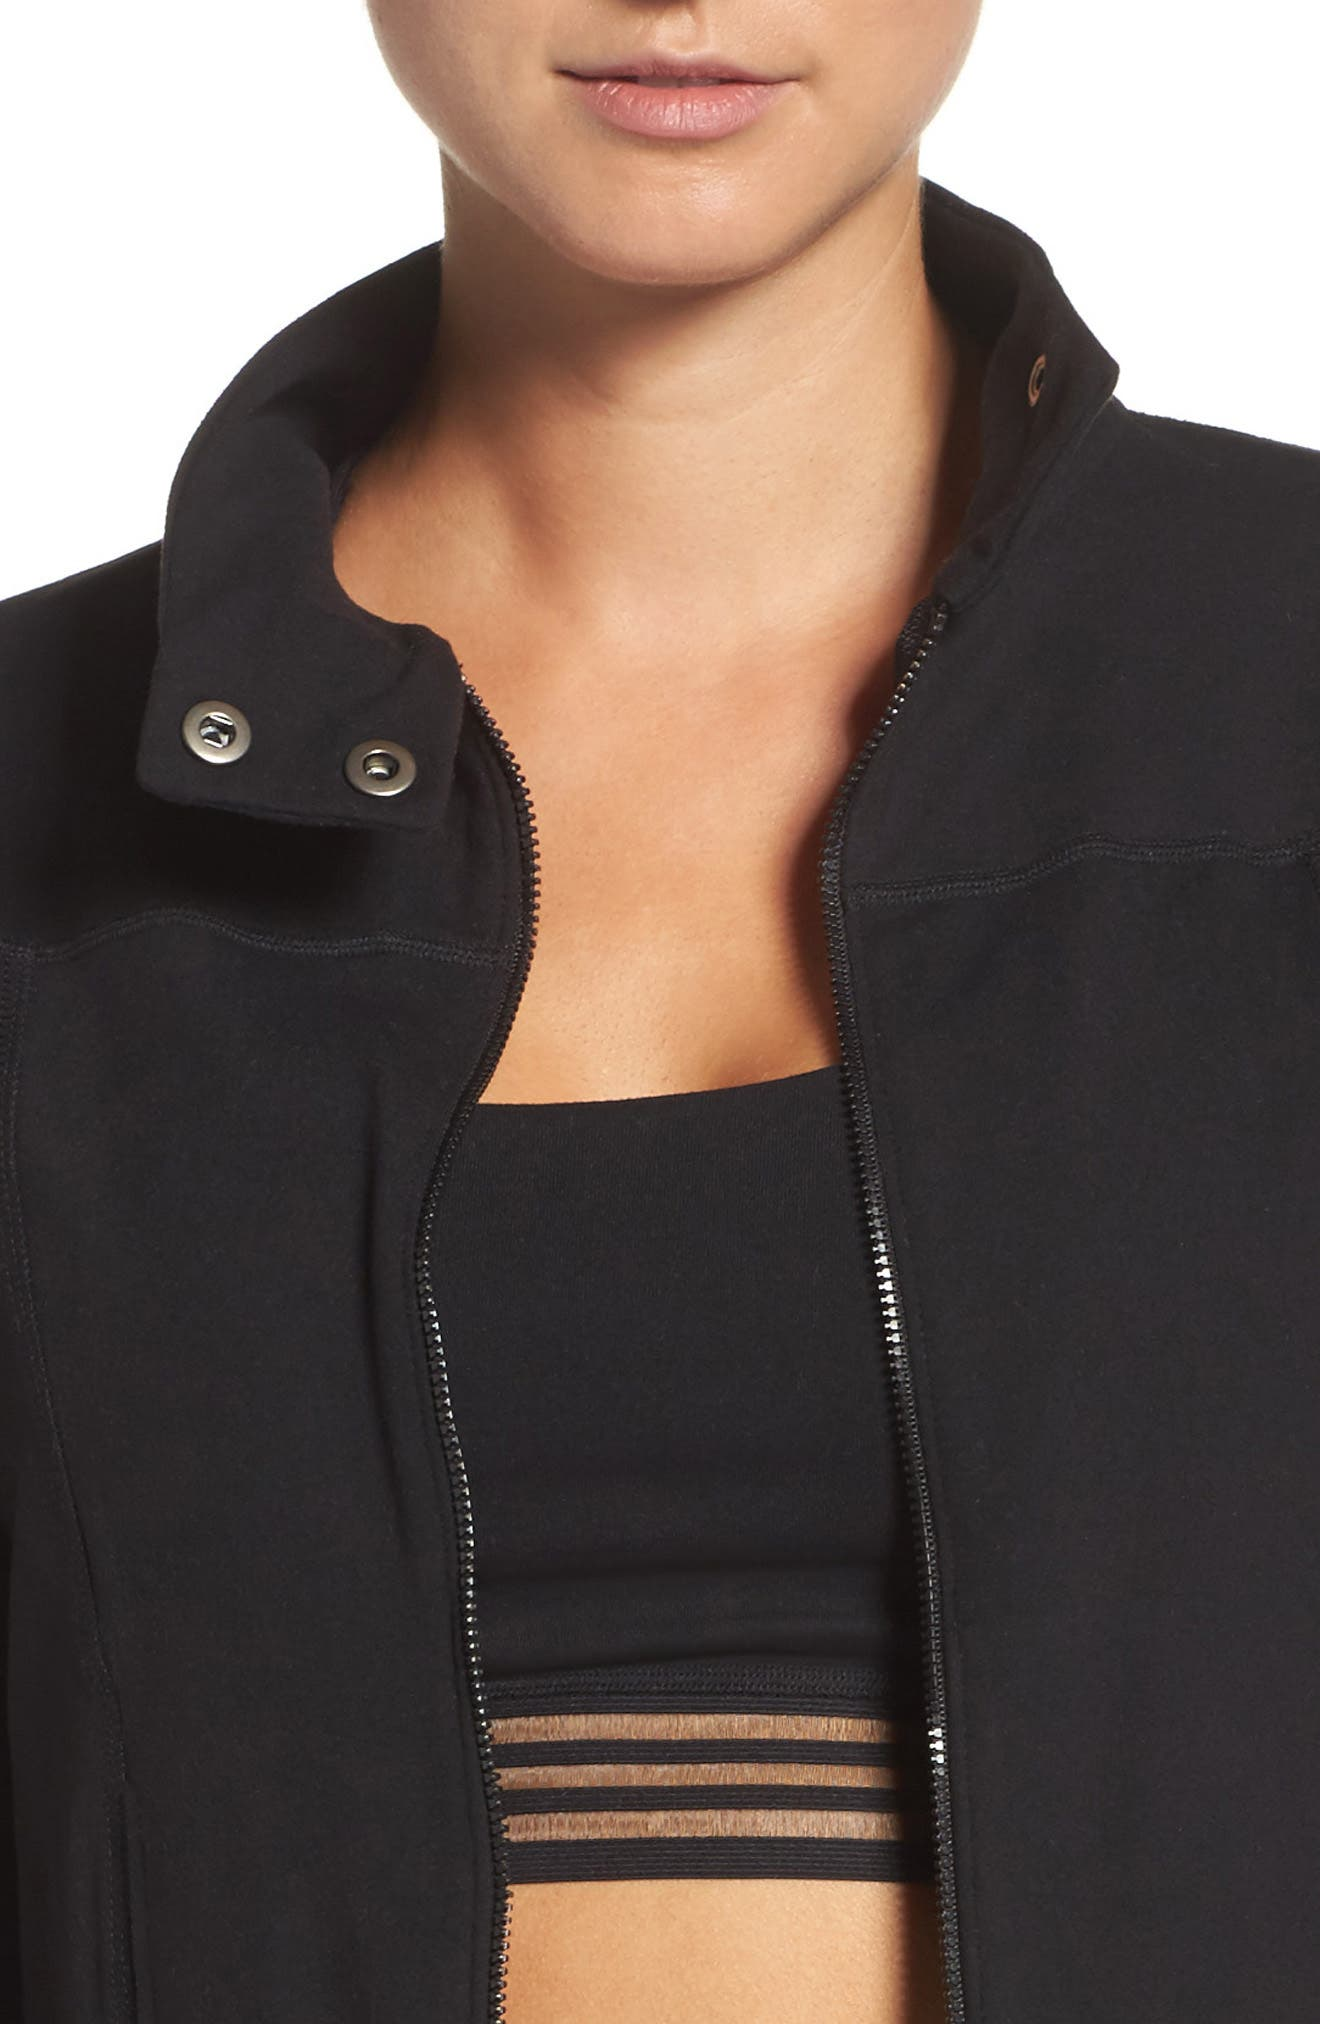 Boxed In Crop Jacket,                             Alternate thumbnail 4, color,                             Jet Black